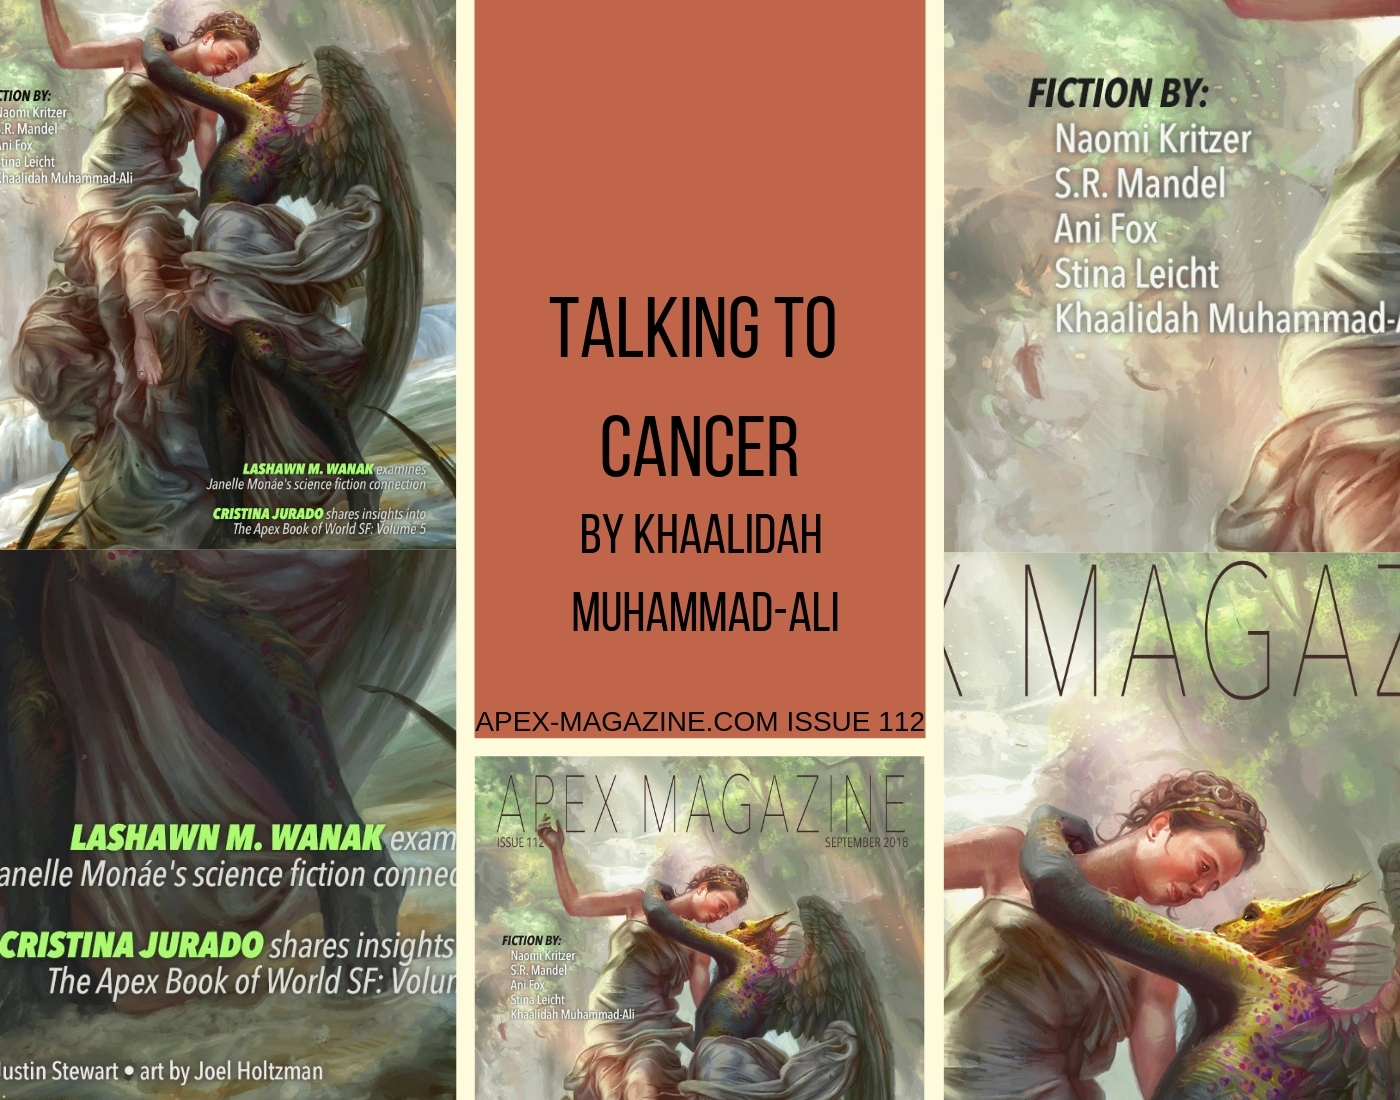 Talking to Cancer